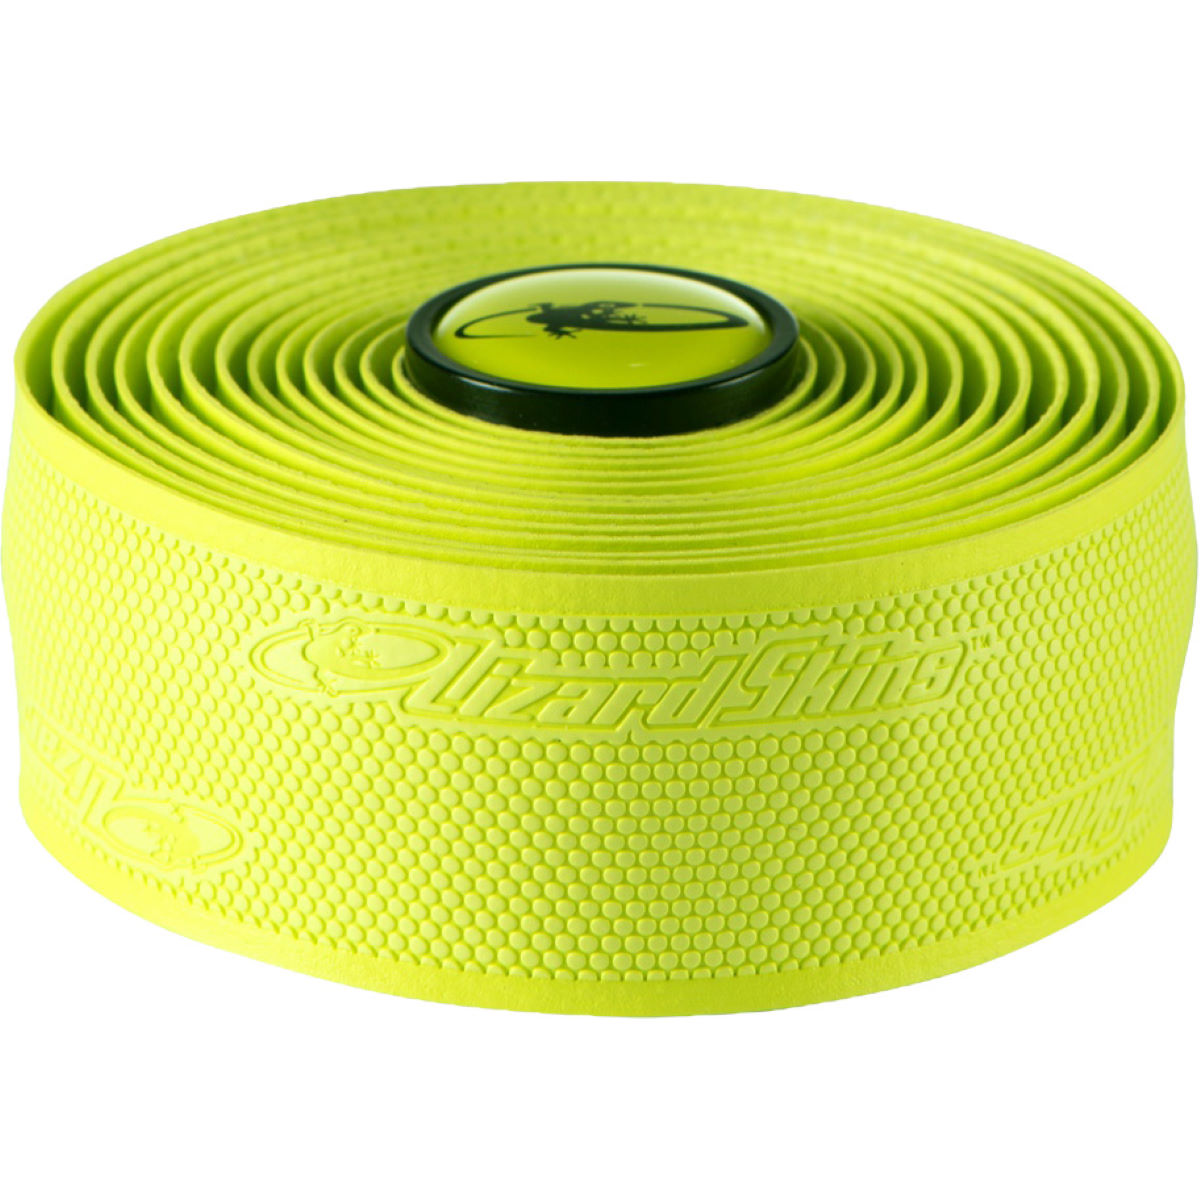 Lizard Skins Lizard Skins DSP 1.8mm Bar Tape   Bar Tape